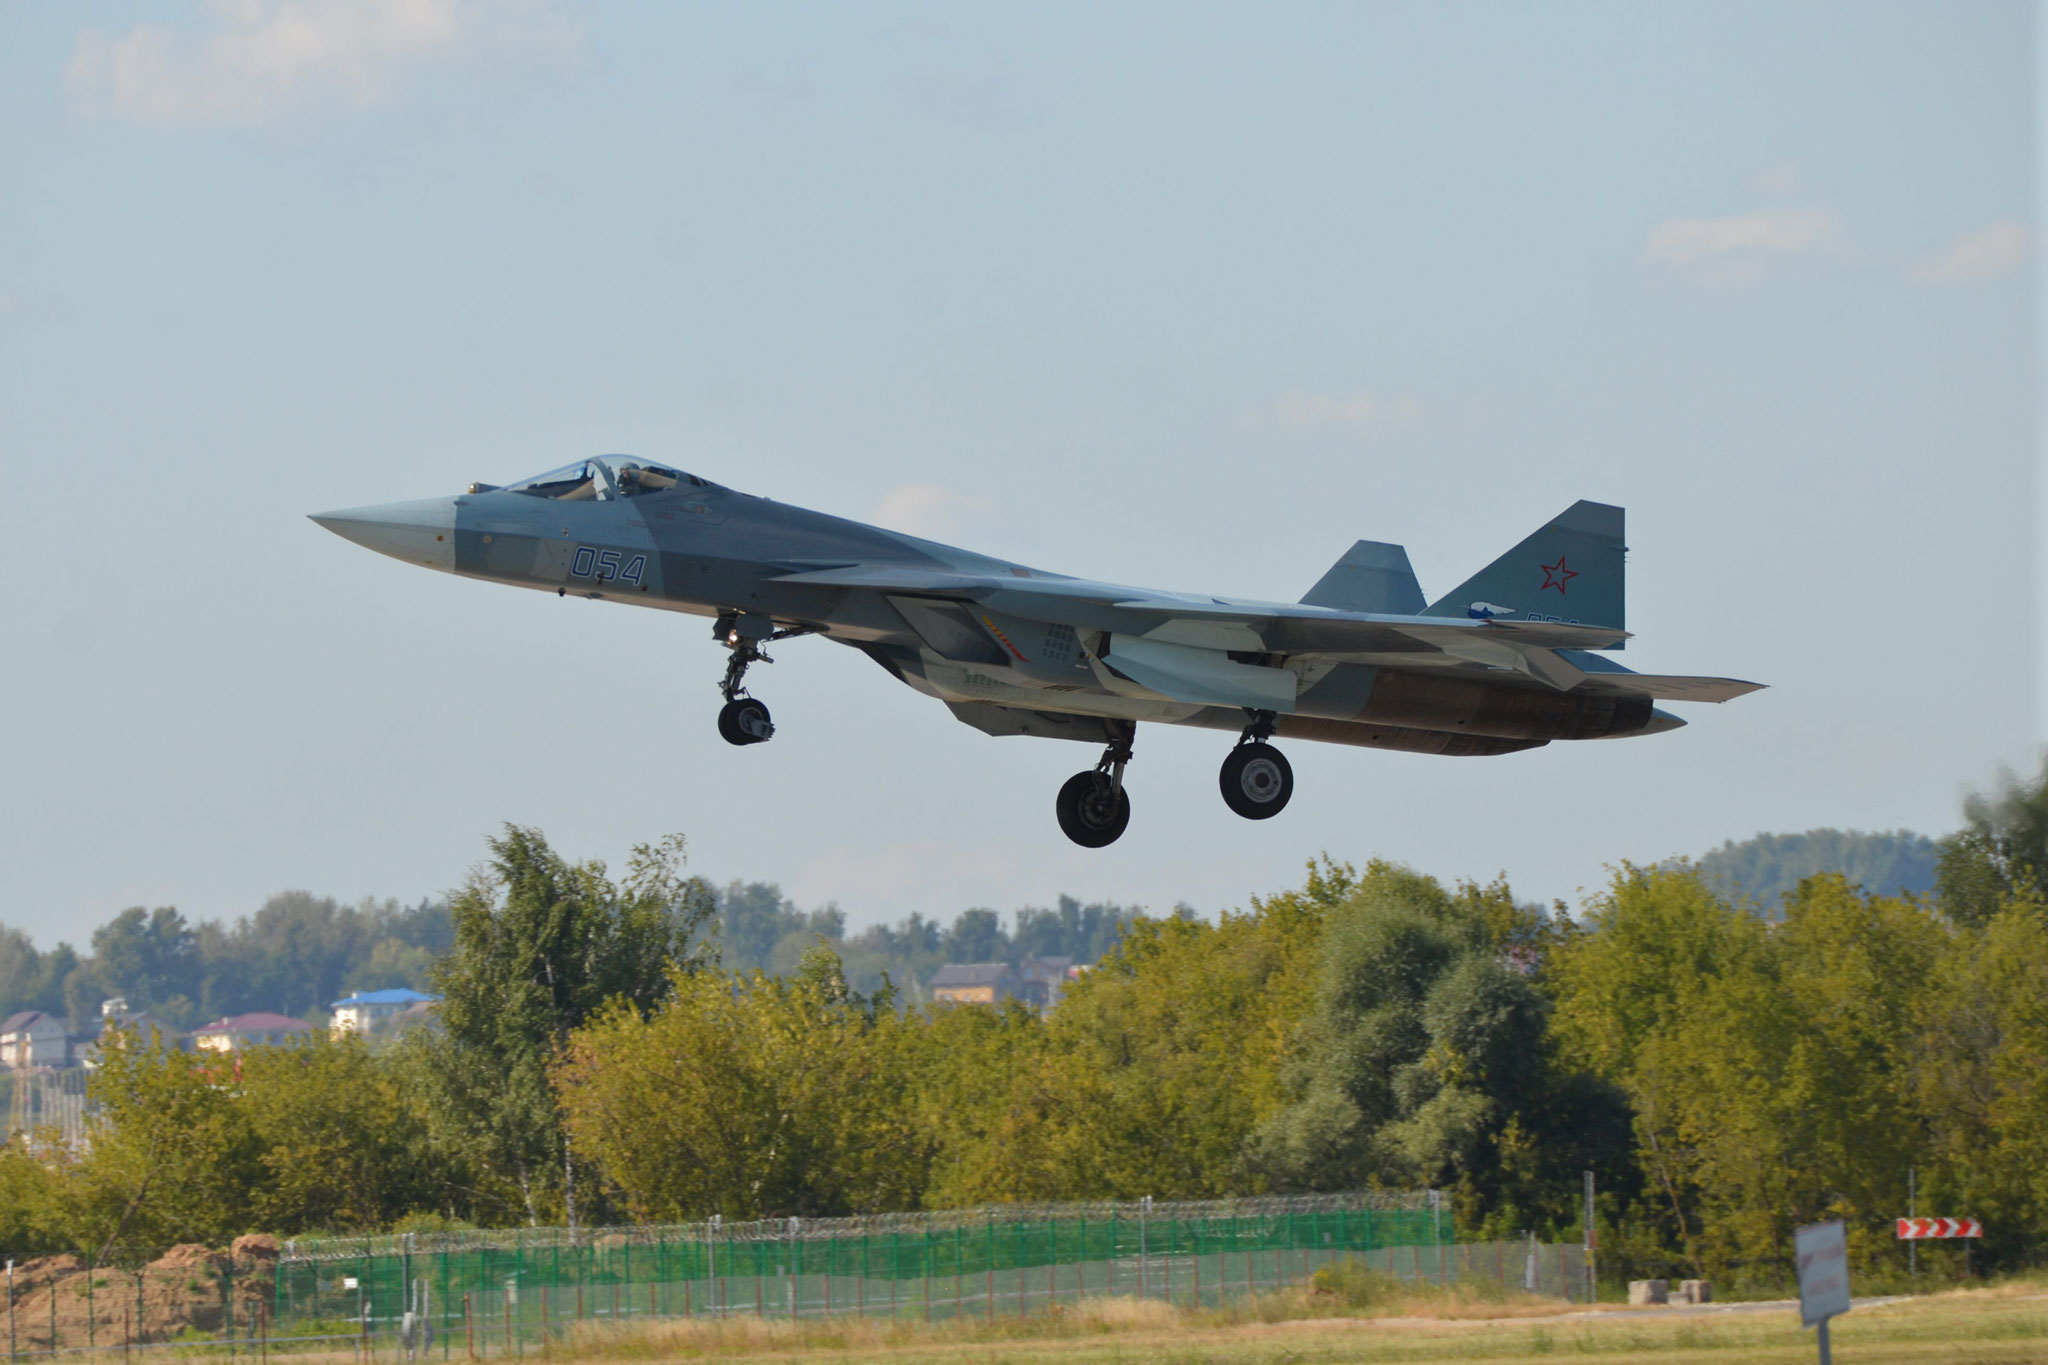 Airplane T-50-11 arrived in Zhukovsky 77